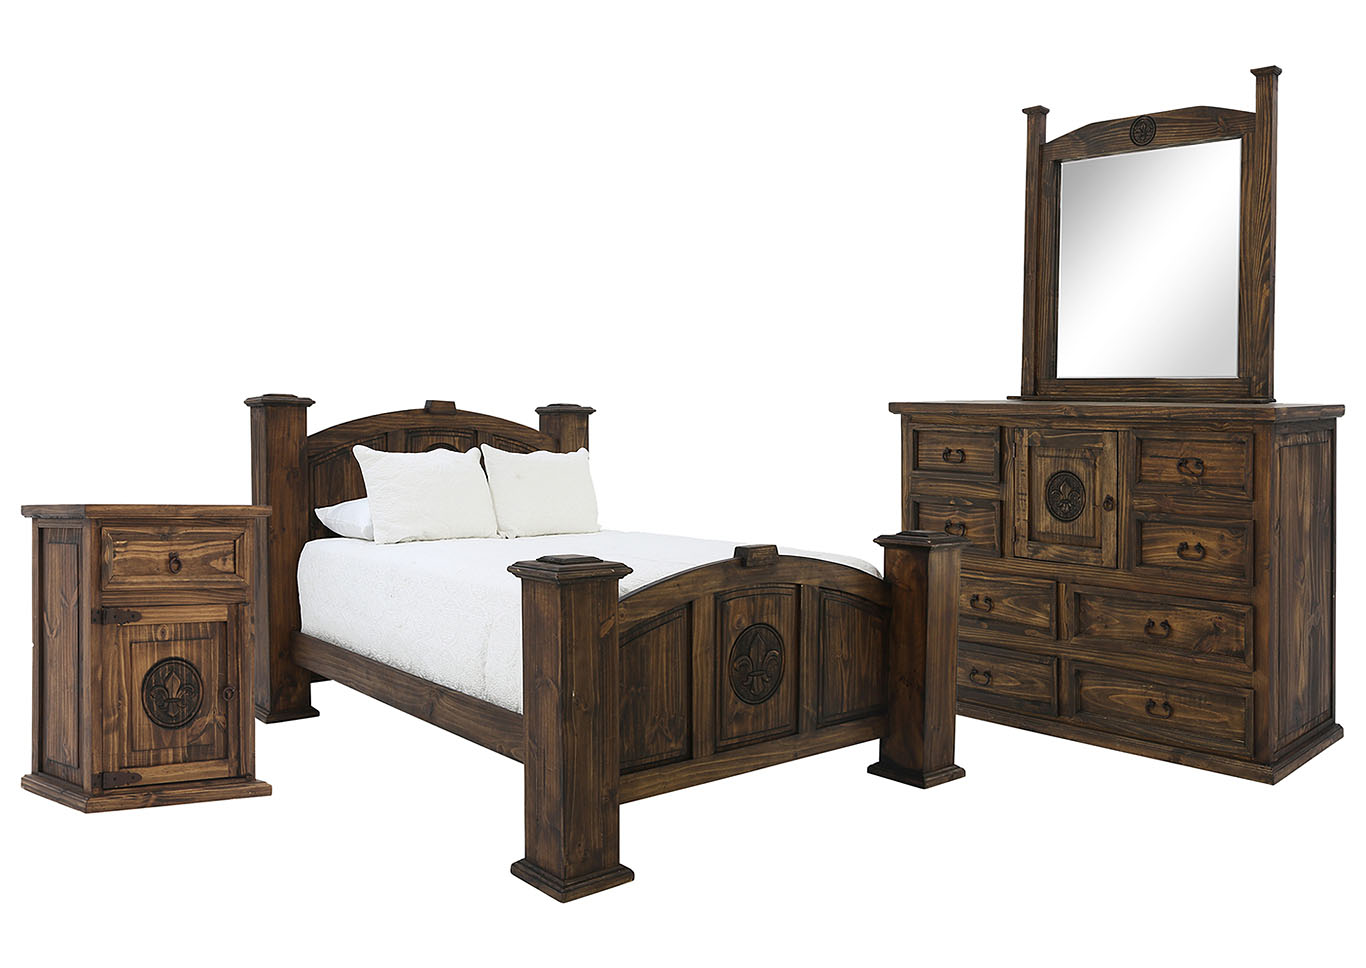 Ivan Smith CASA ANTIQUE WITH FLEUR DE LIS QUEEN BEDROOM SET